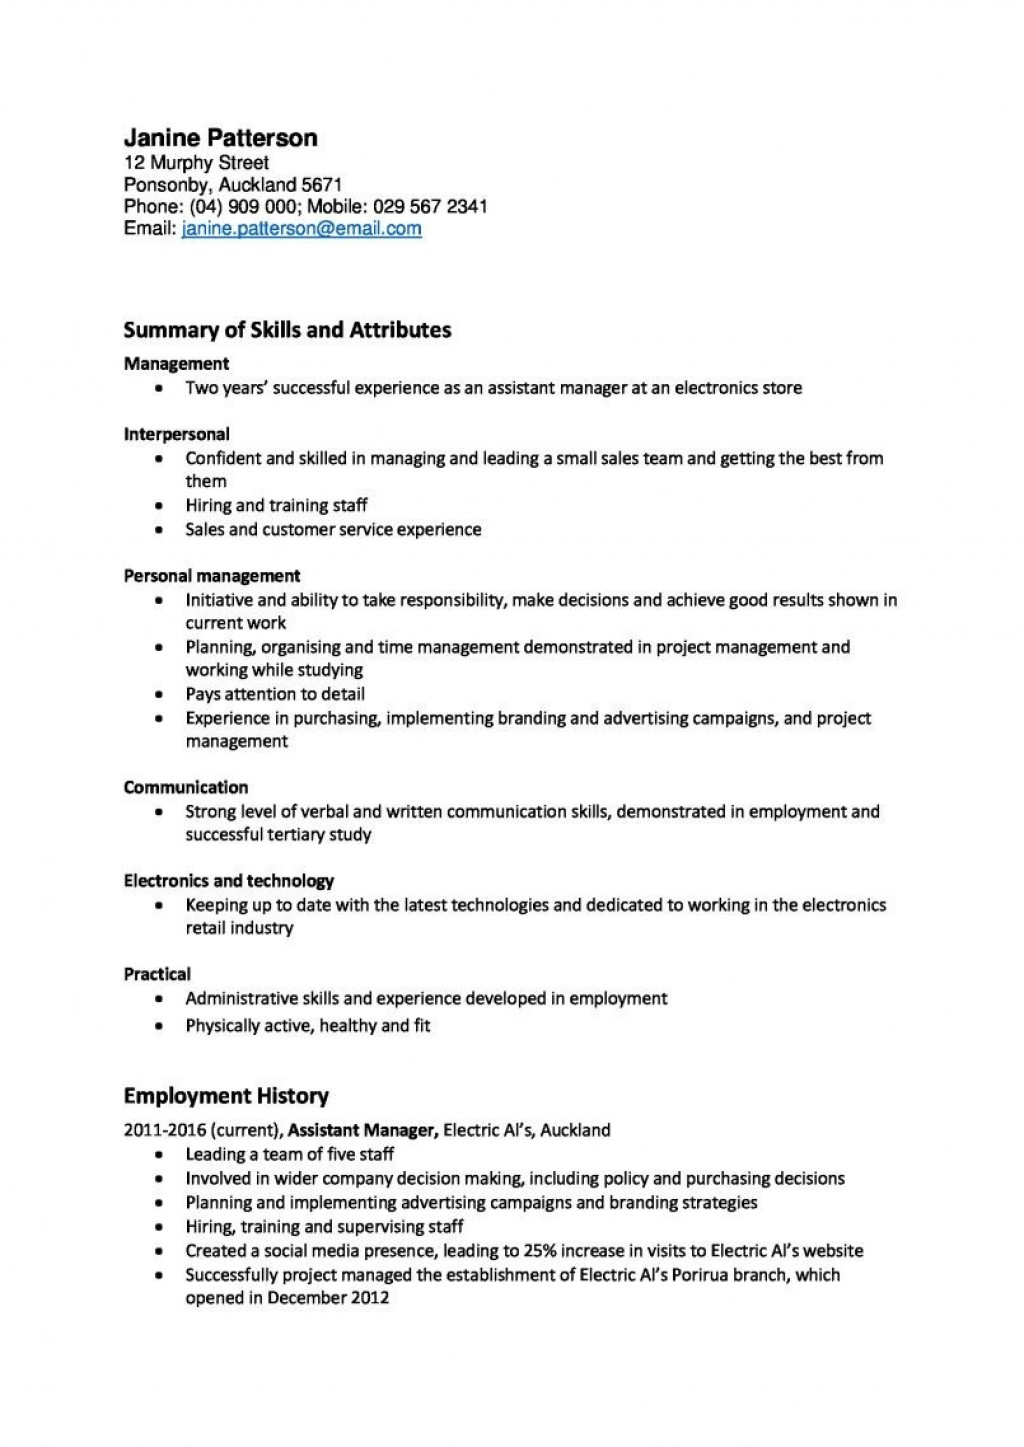 013 Best Essay Writing Service Yahoo Answers Example Inspirational Cover Letter Examples Stupendous Large